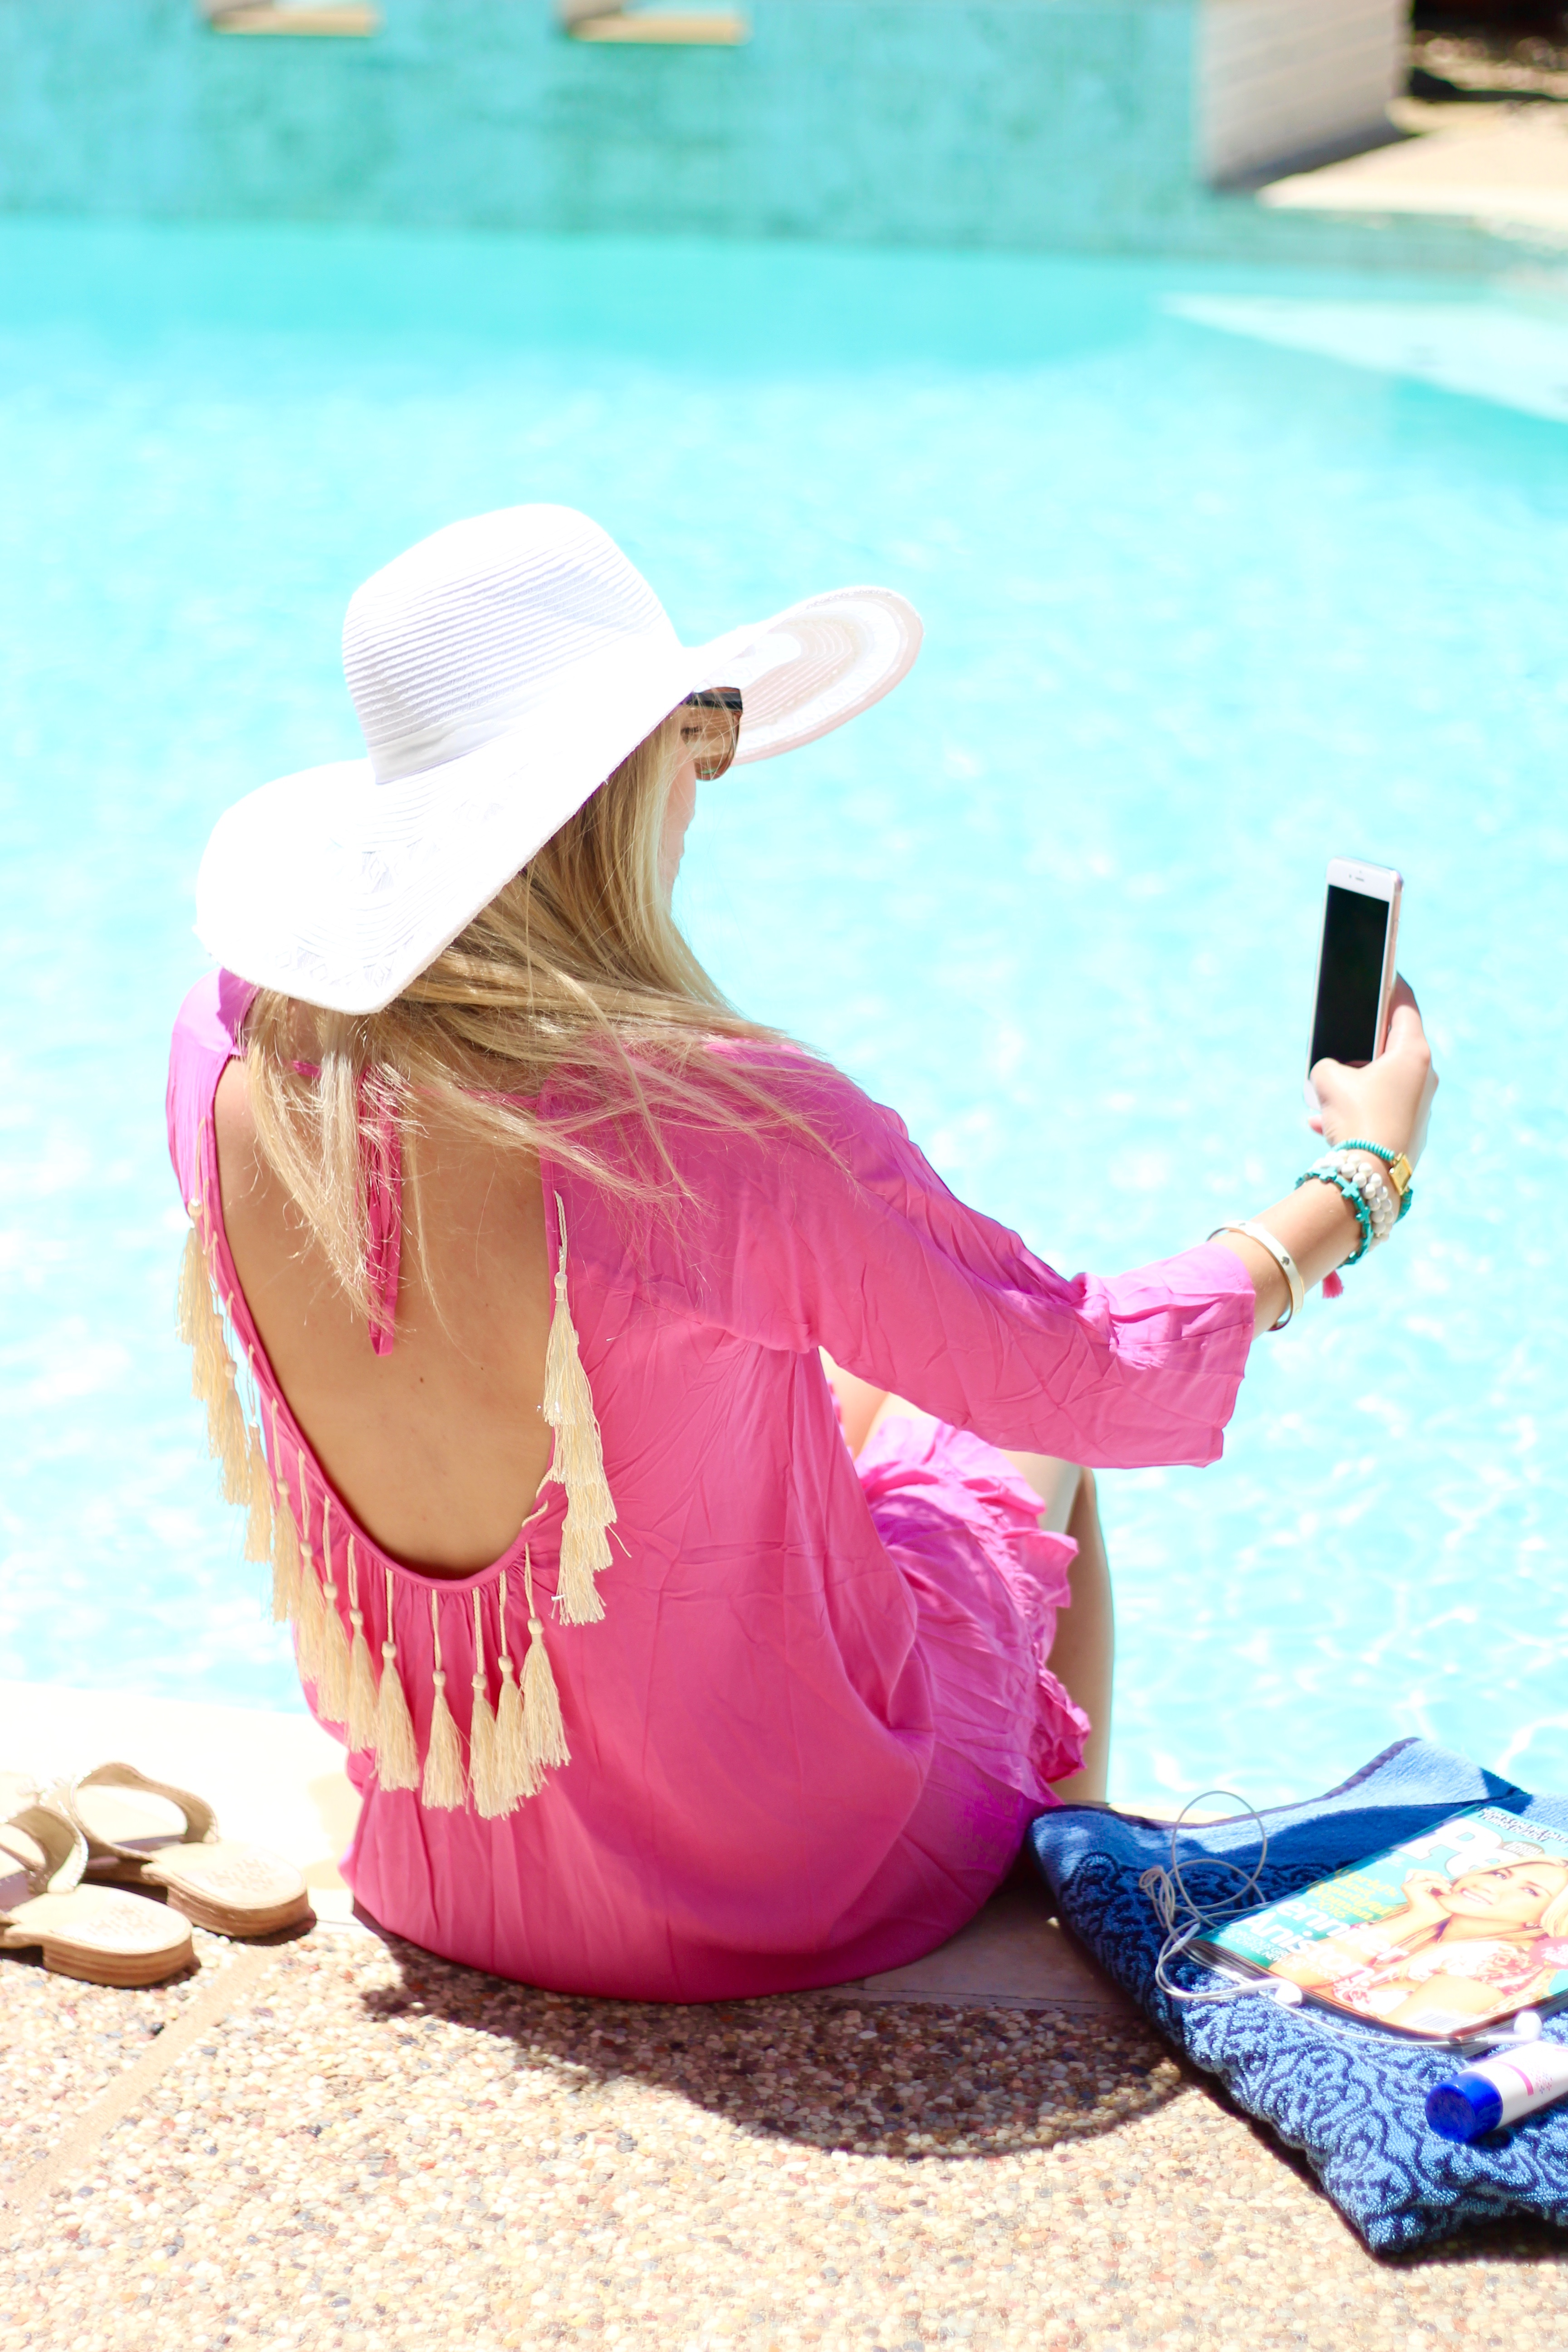 snap chatting away in the summer | Audrey Madison Stowe Blog